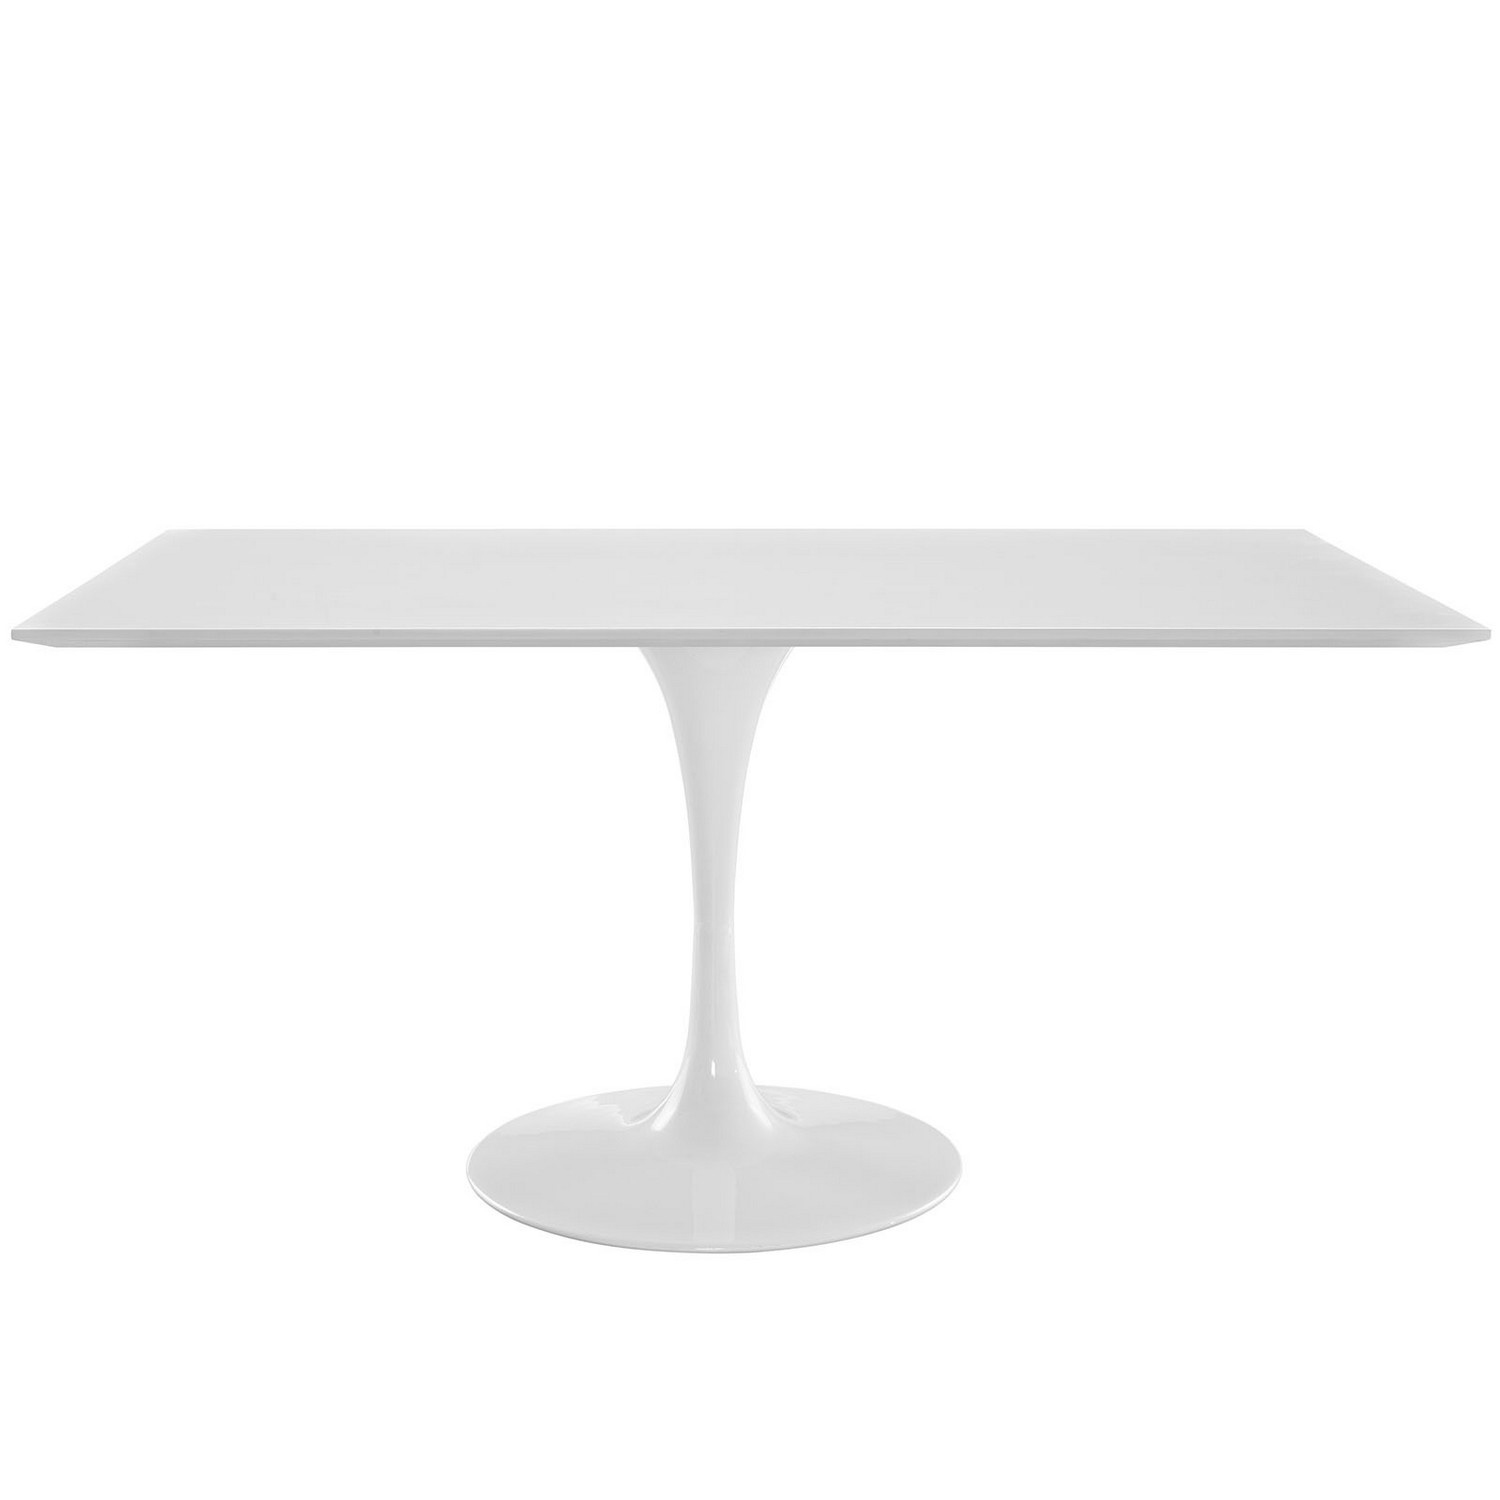 Modway Lippa 60 Rectangle Dining Table - White